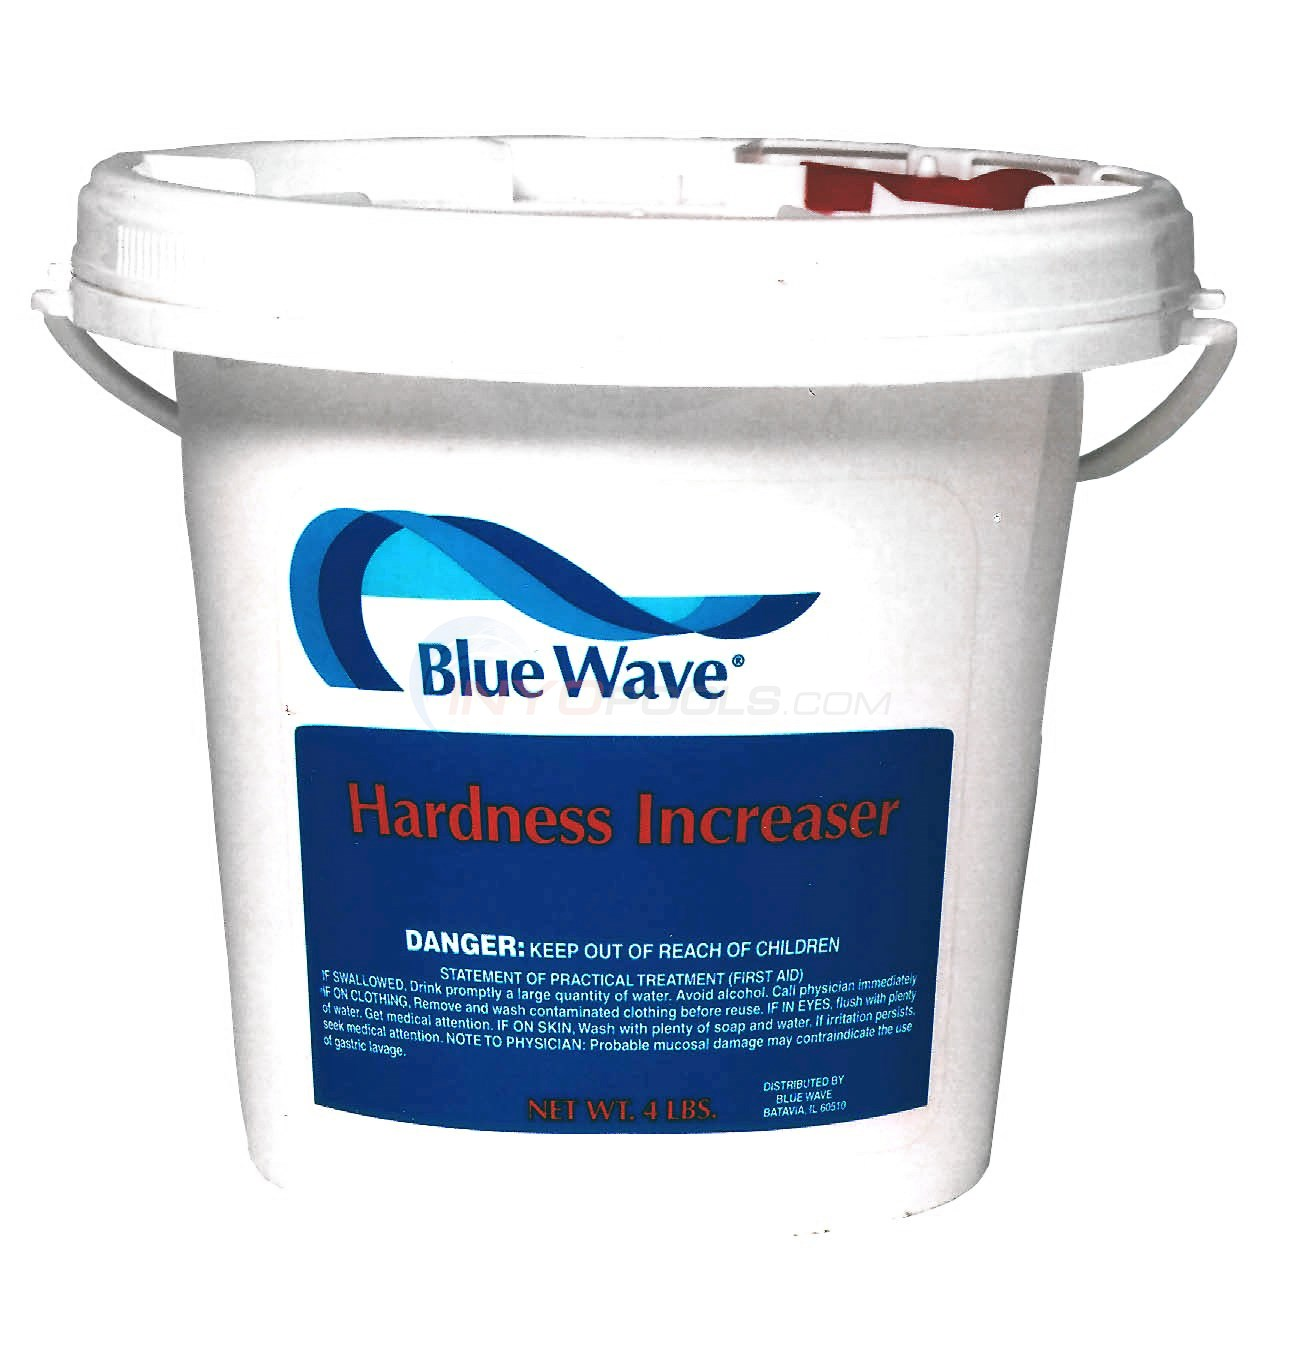 Blue Wave Hardness Increaser 4 lb pail - NY591